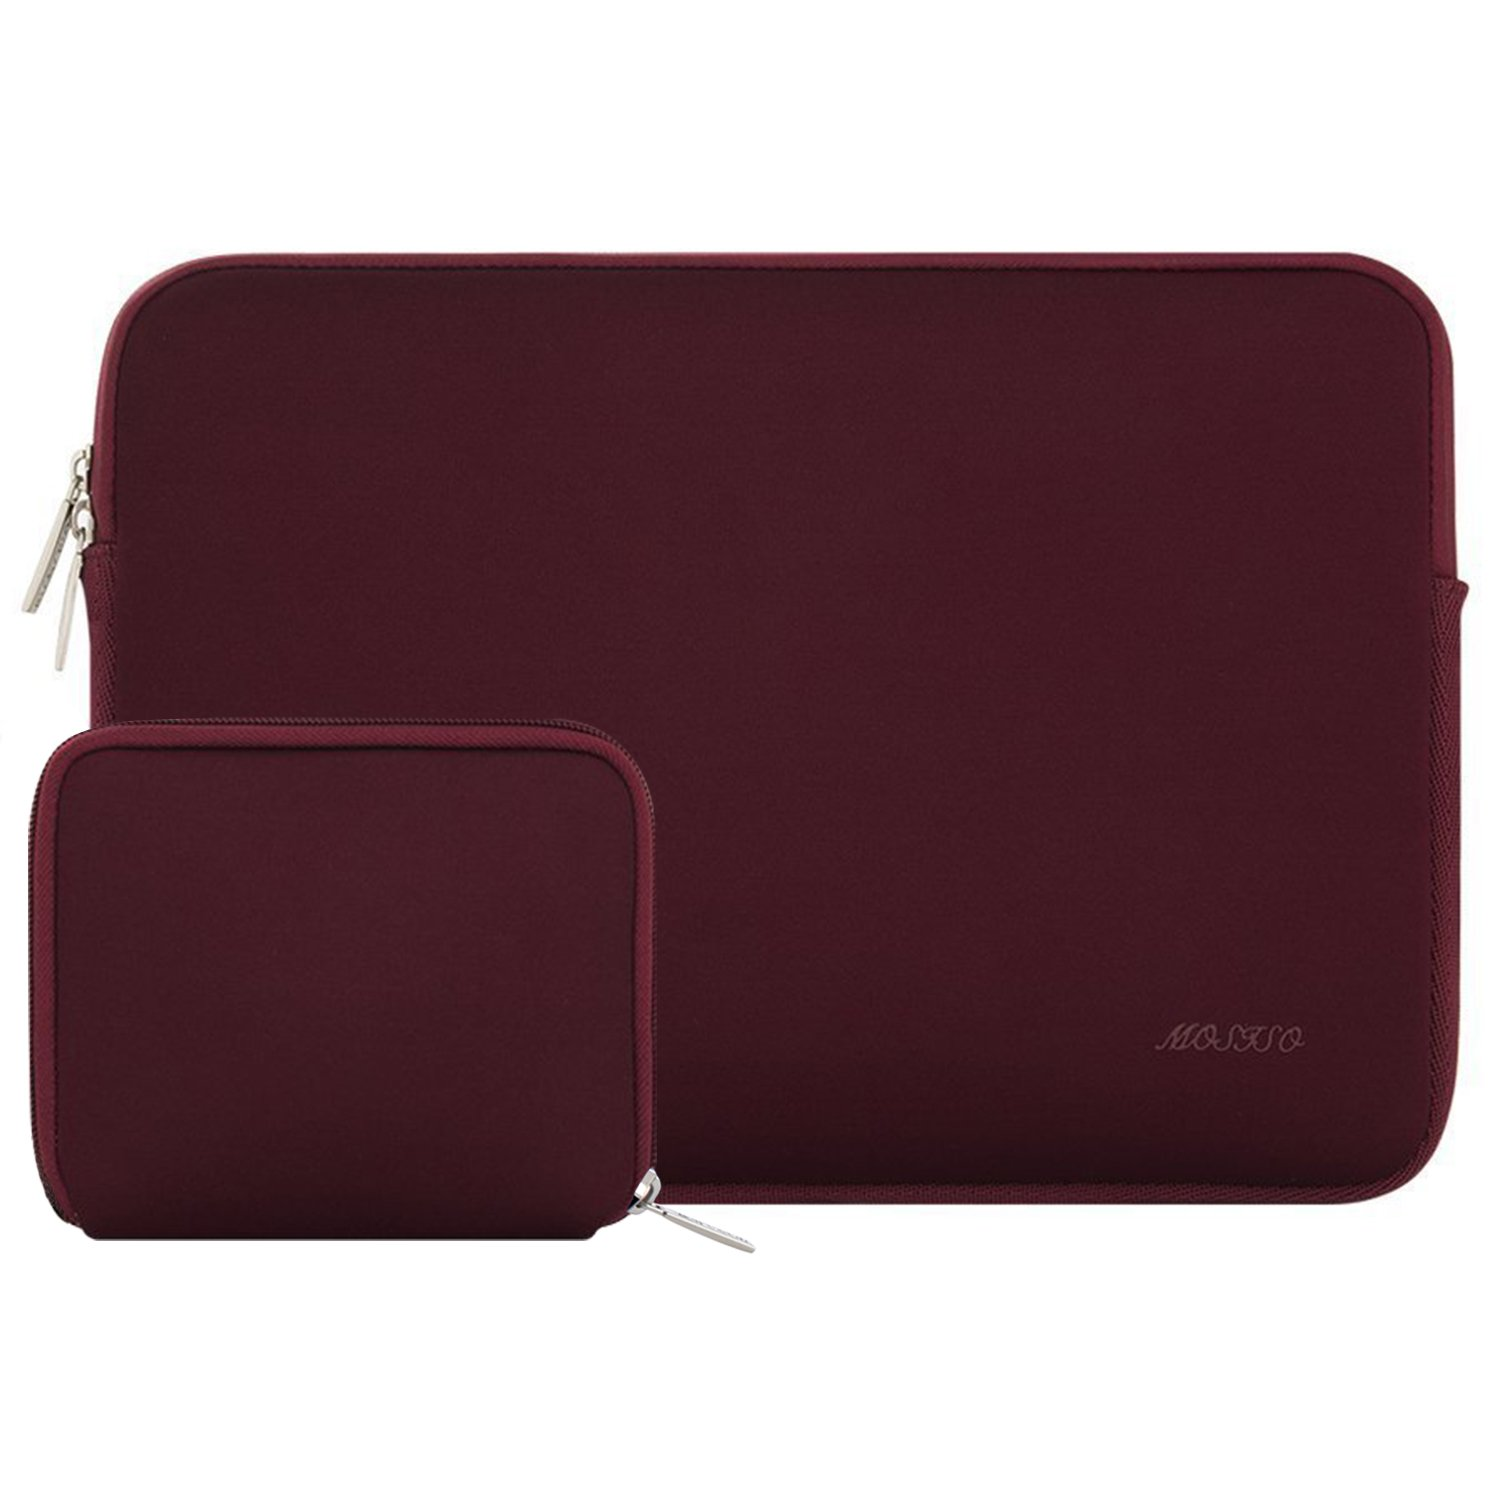 MOSISO Water Repellent Lycra Sleeve Bag Cover Compatible 13-13.3 Inch Laptop with Small Case Compatible MacBook Charger, Wine Red